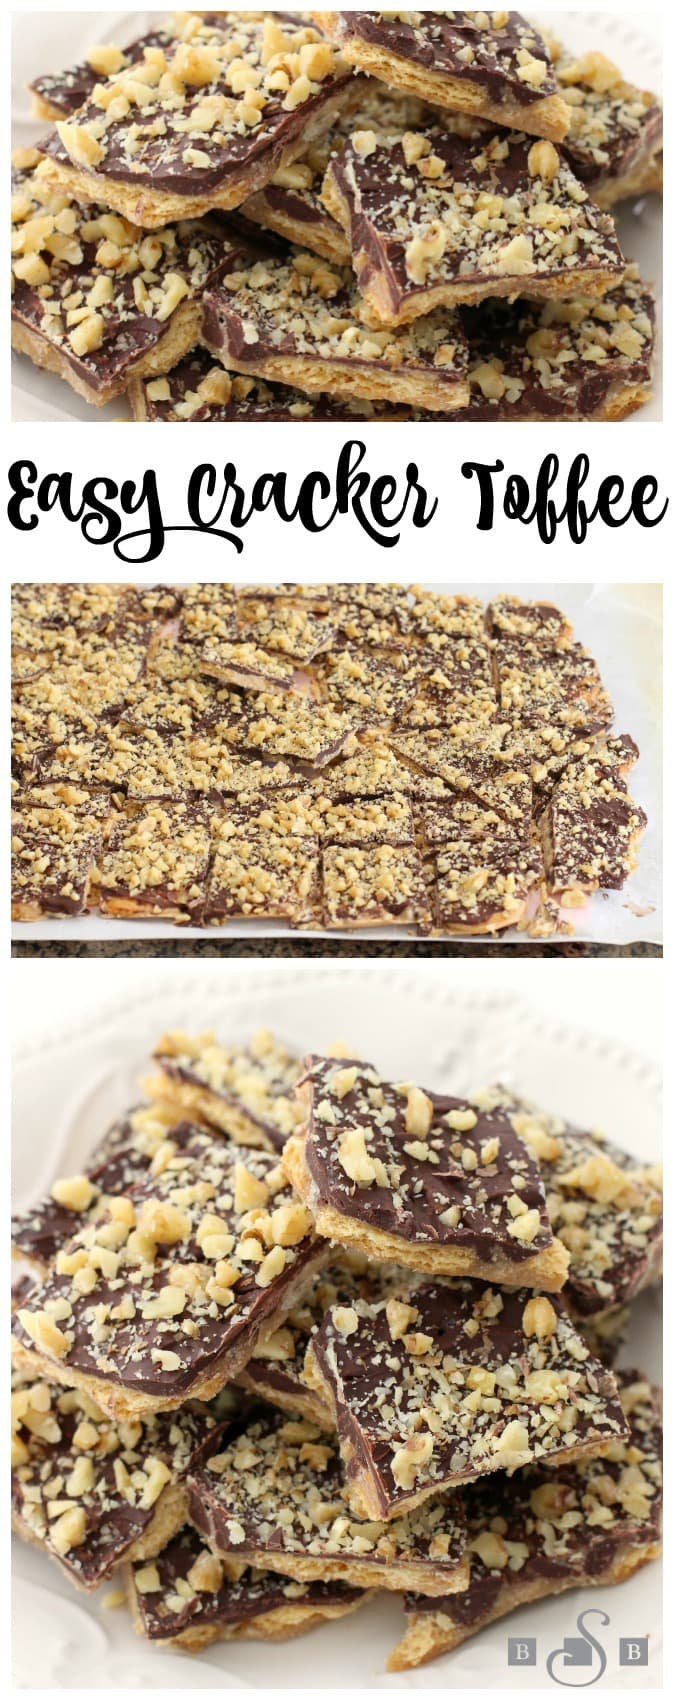 Easy Cracker Toffee is so quick and simple, and the sweet and salty mix from the chocolate and Ritz crackers tastes delicious!